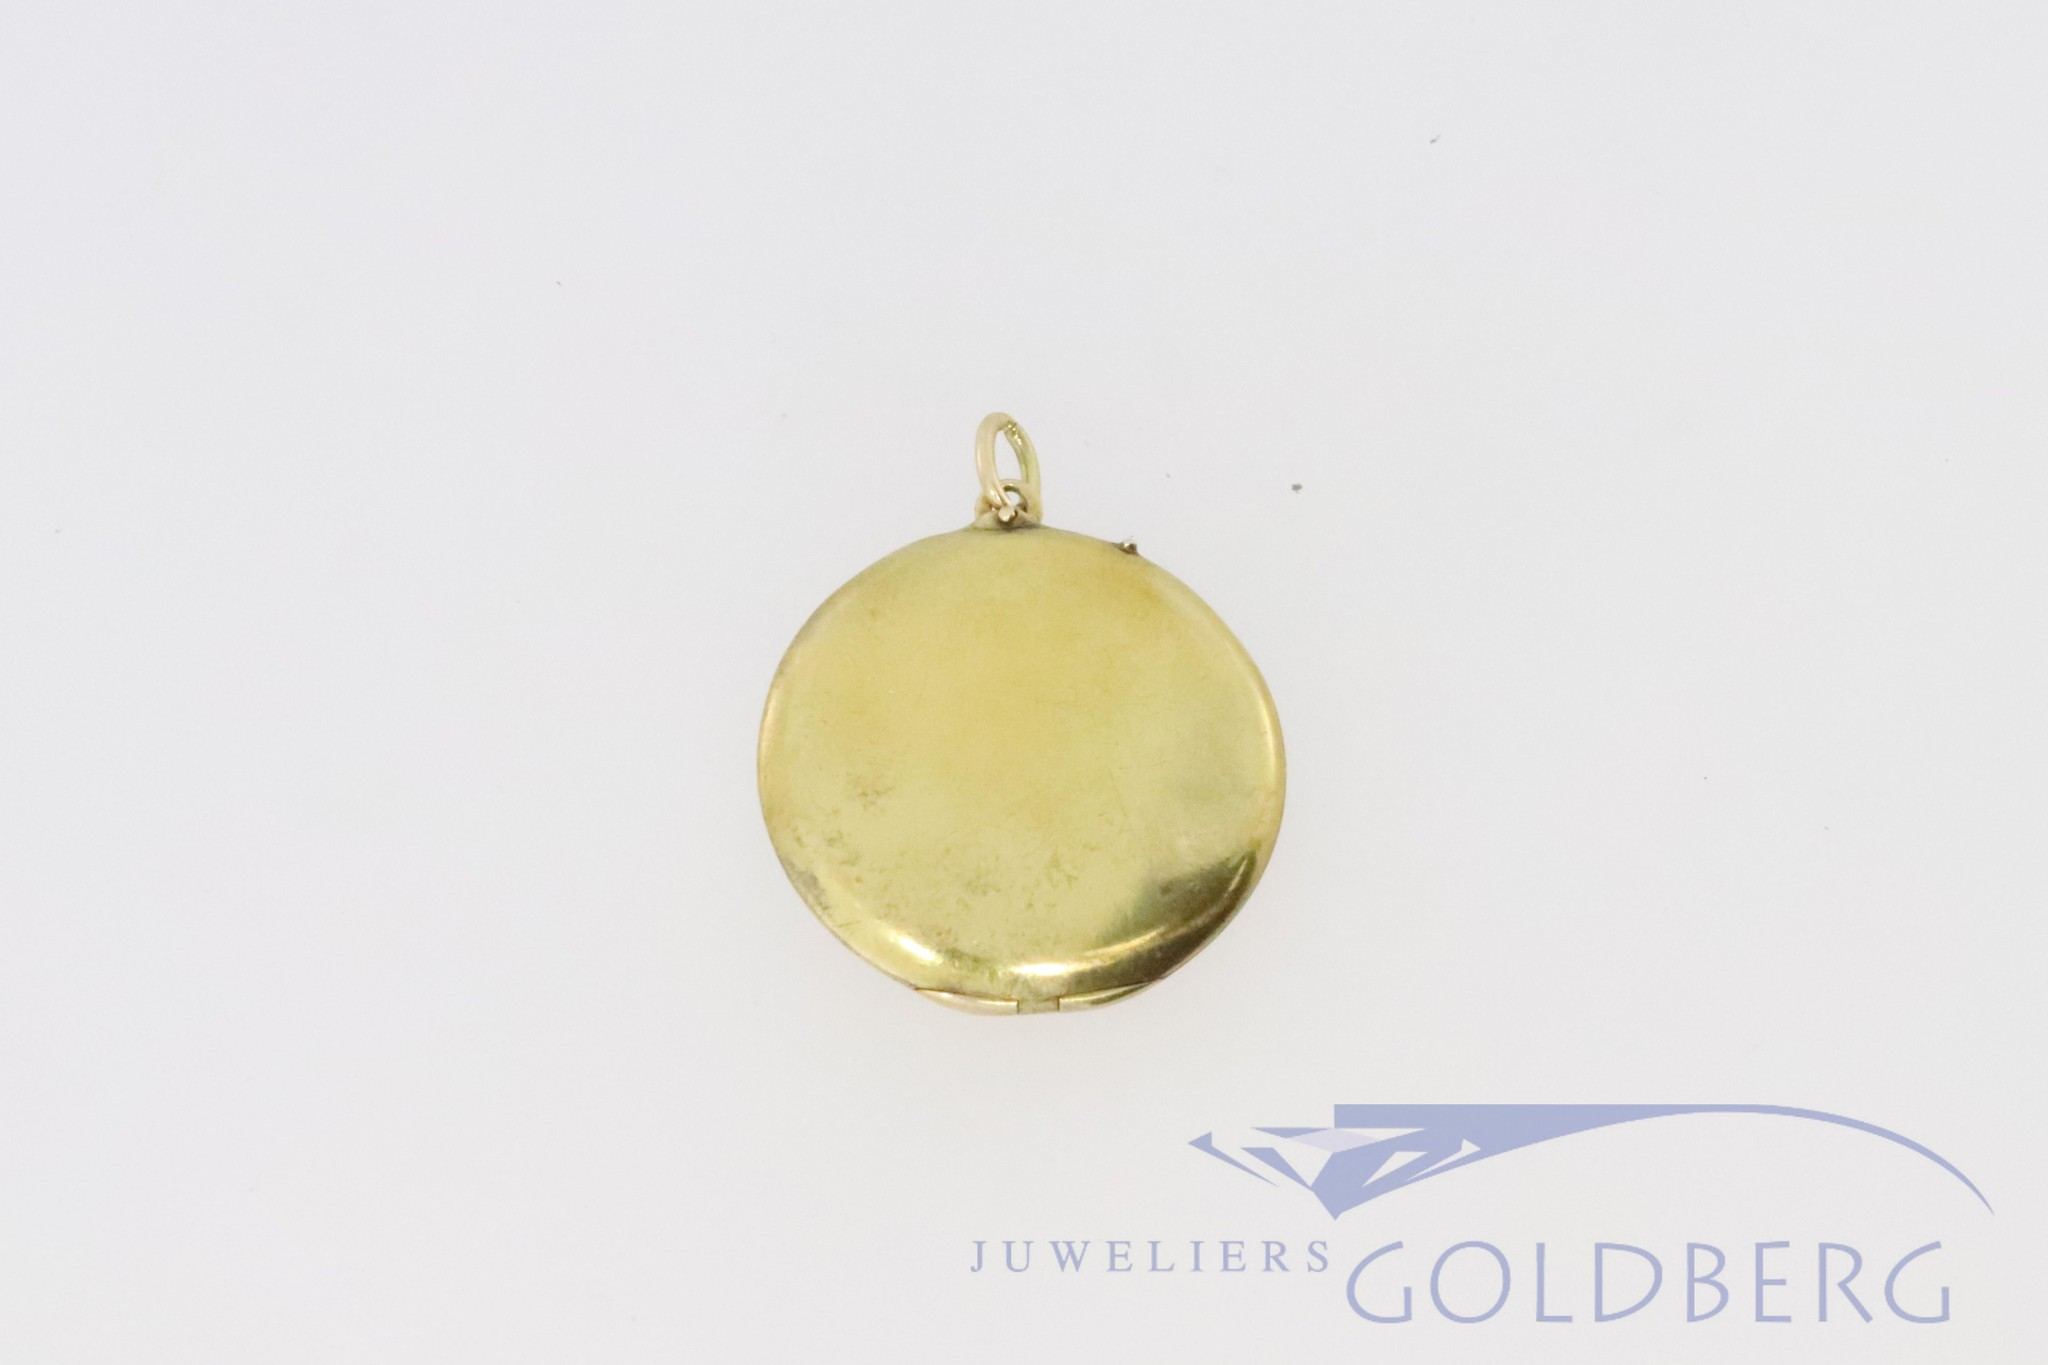 14k medallion with engraving of a spider web